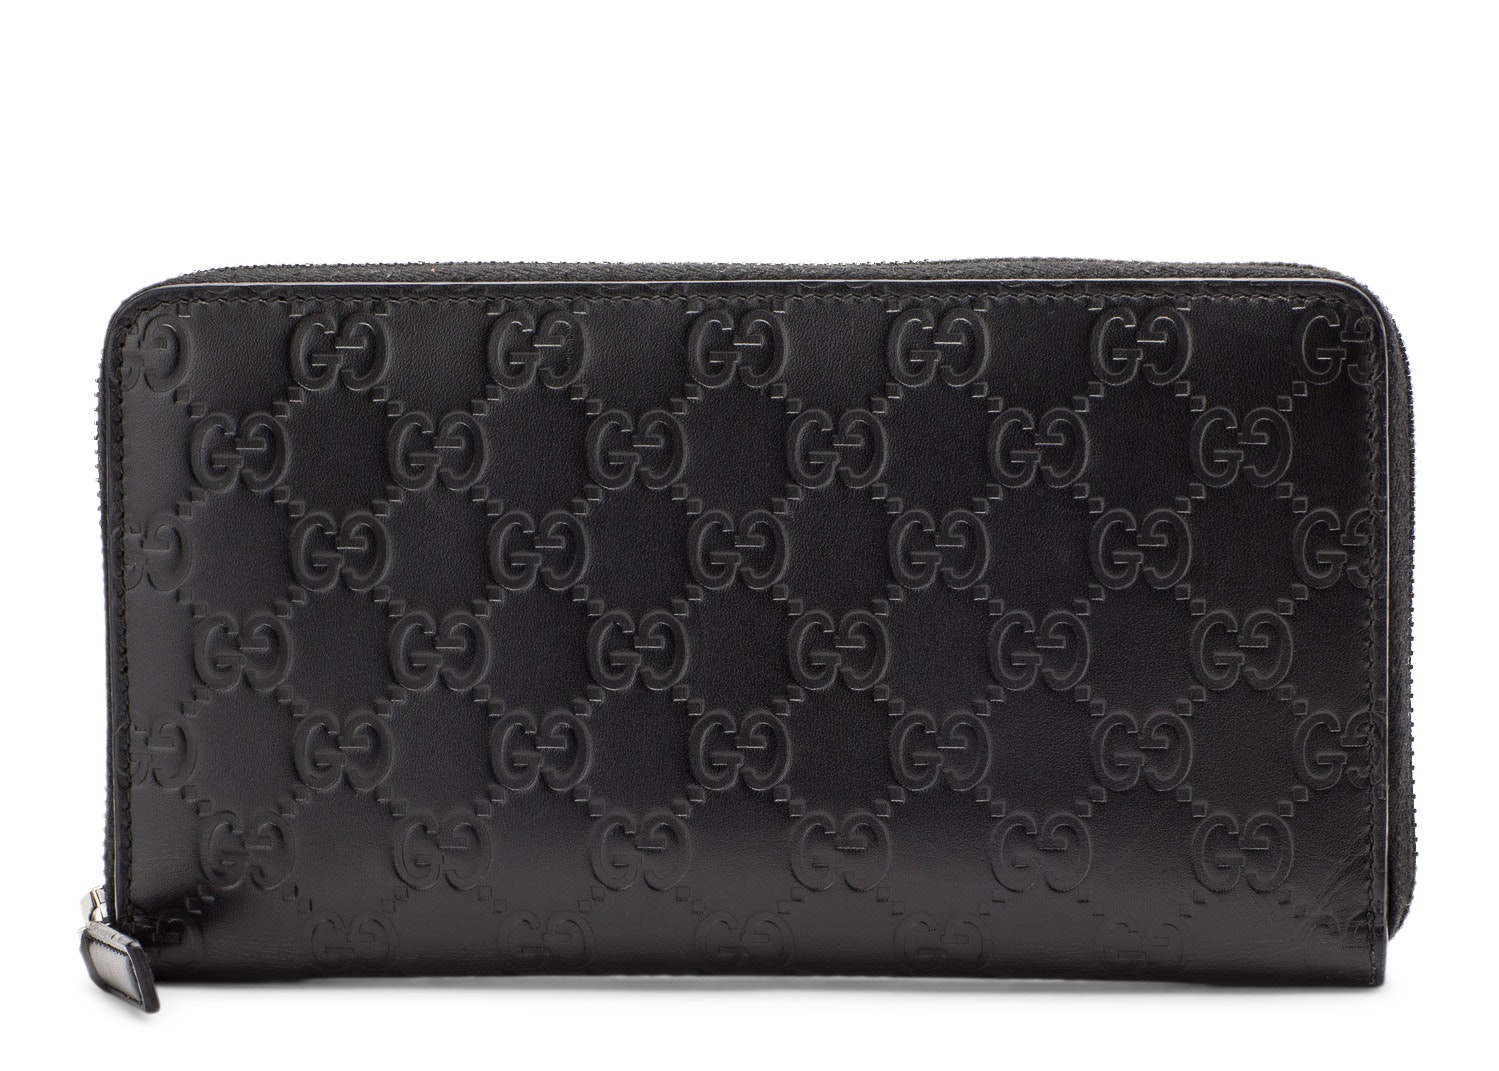 Gucci Zip Around Wallet Monogram Guccissima Black